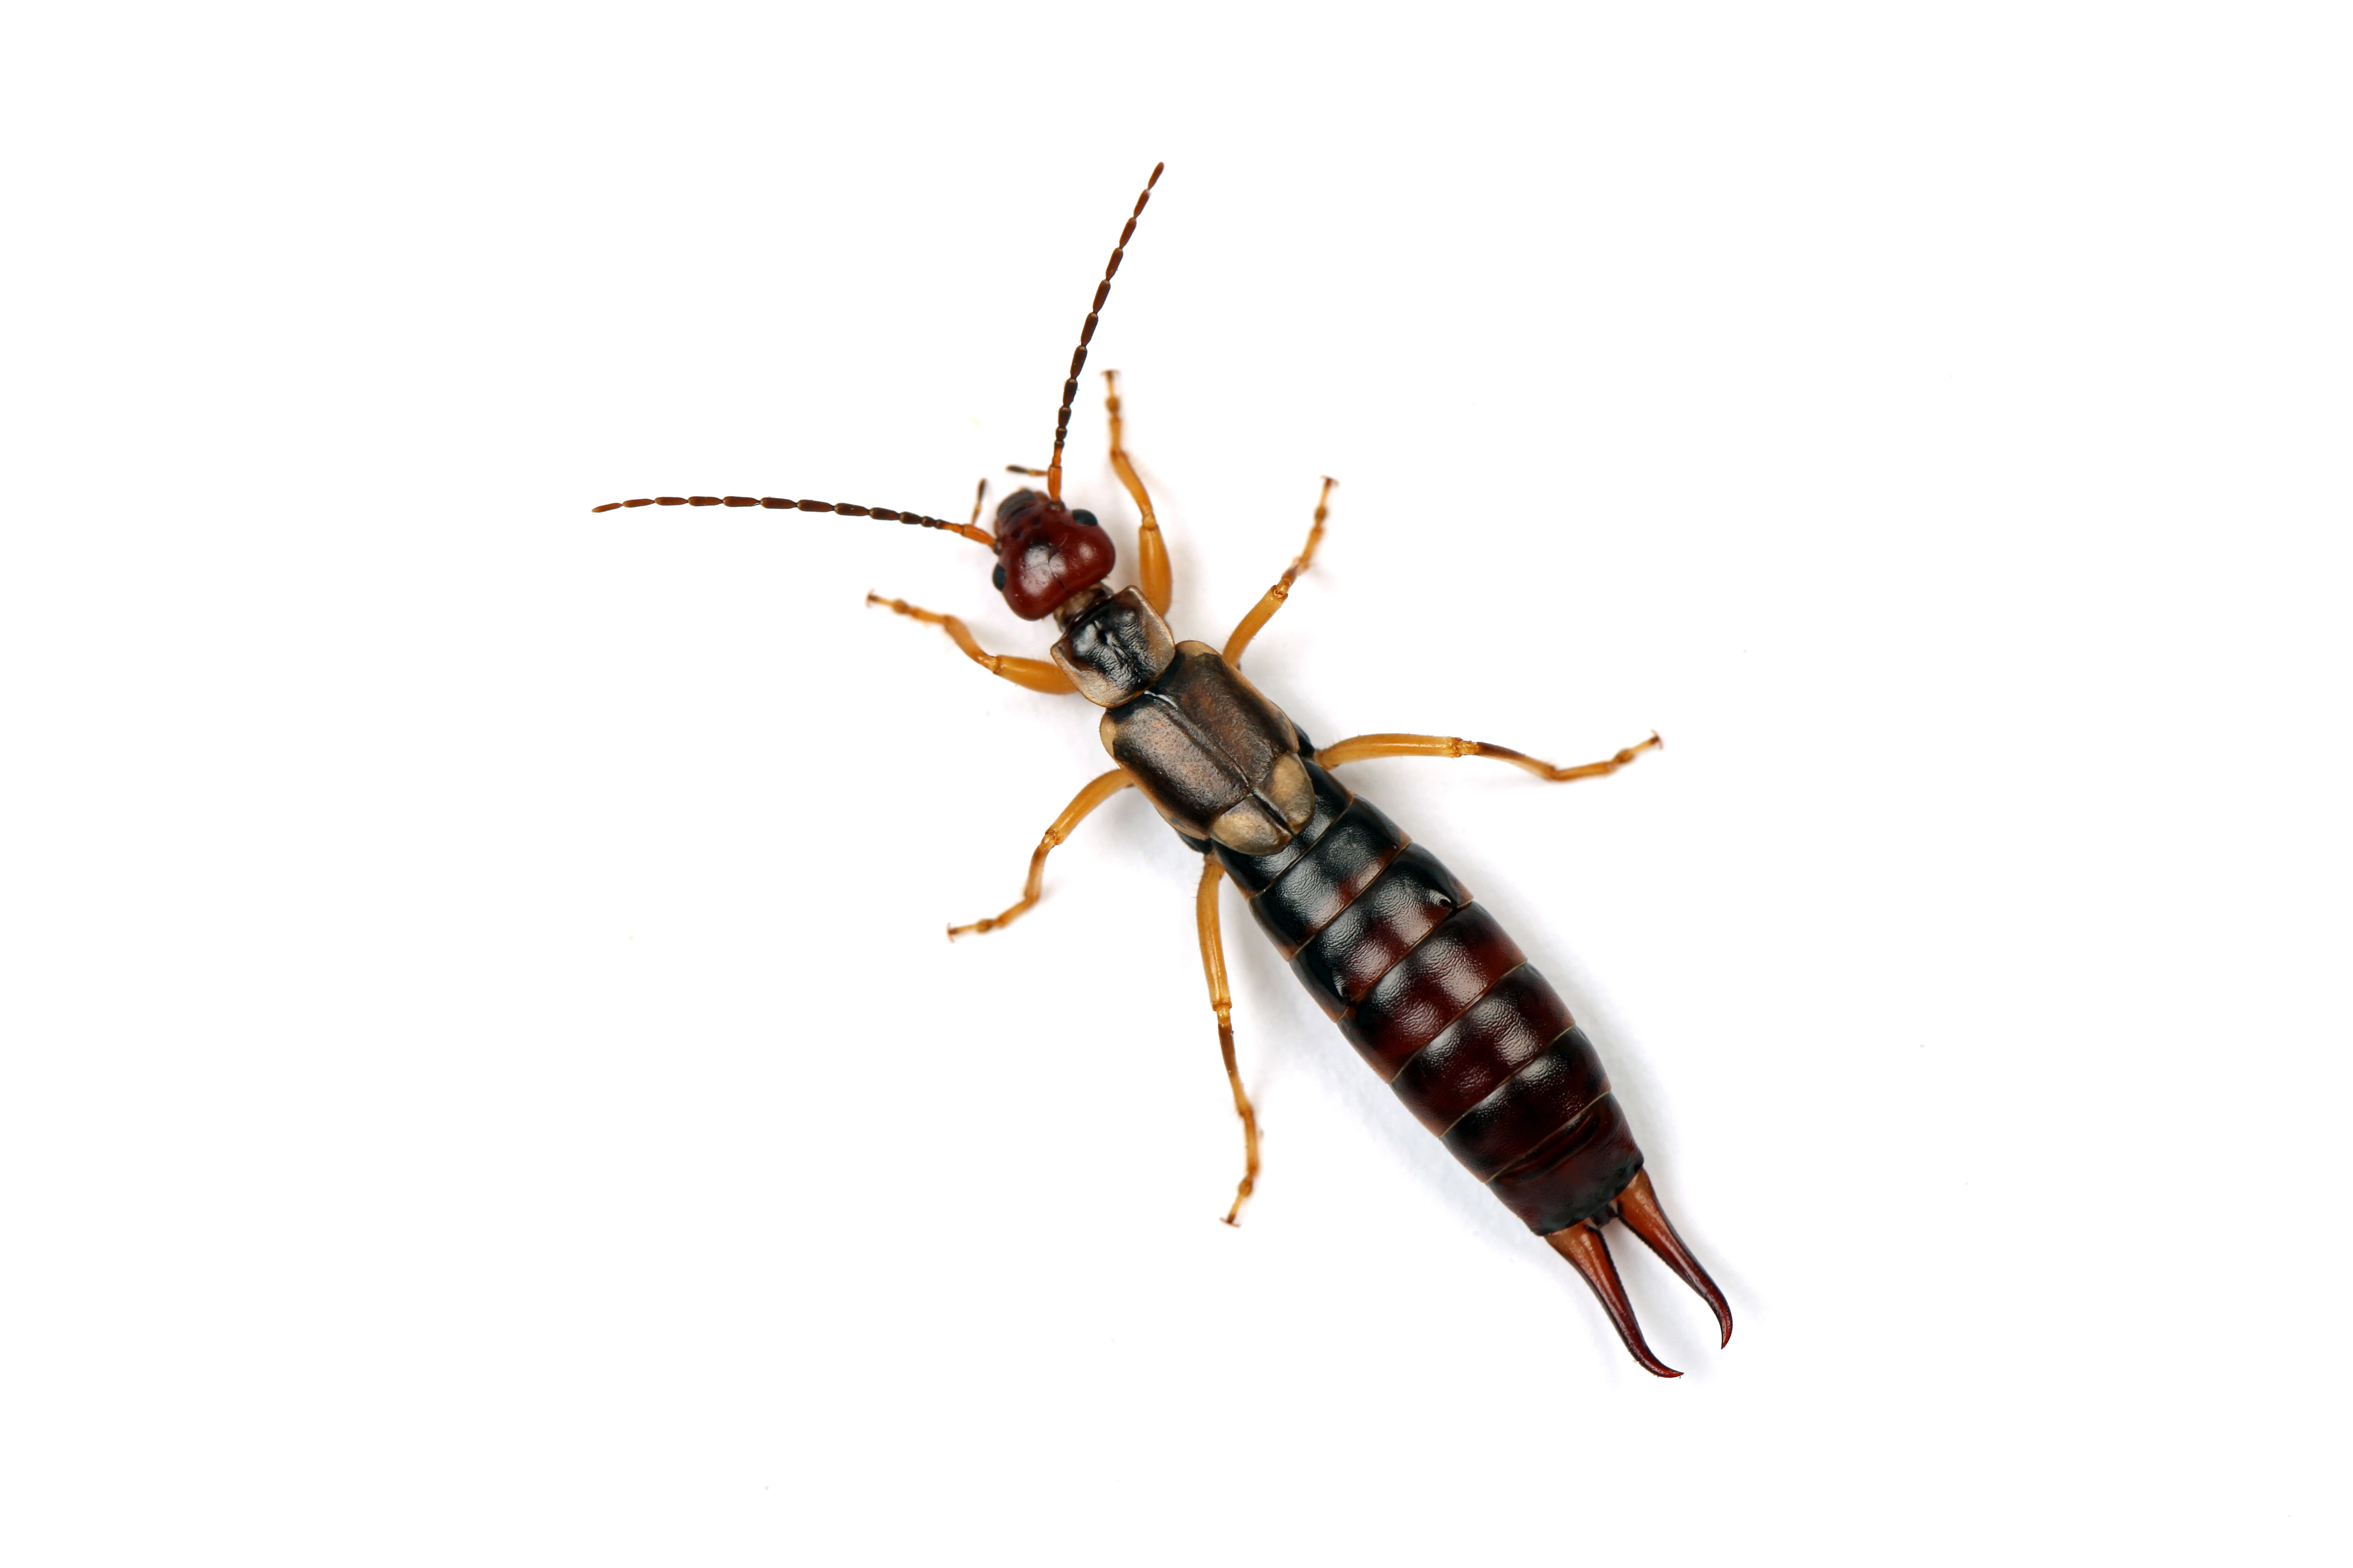 how to get rid of pincher bugs in my house